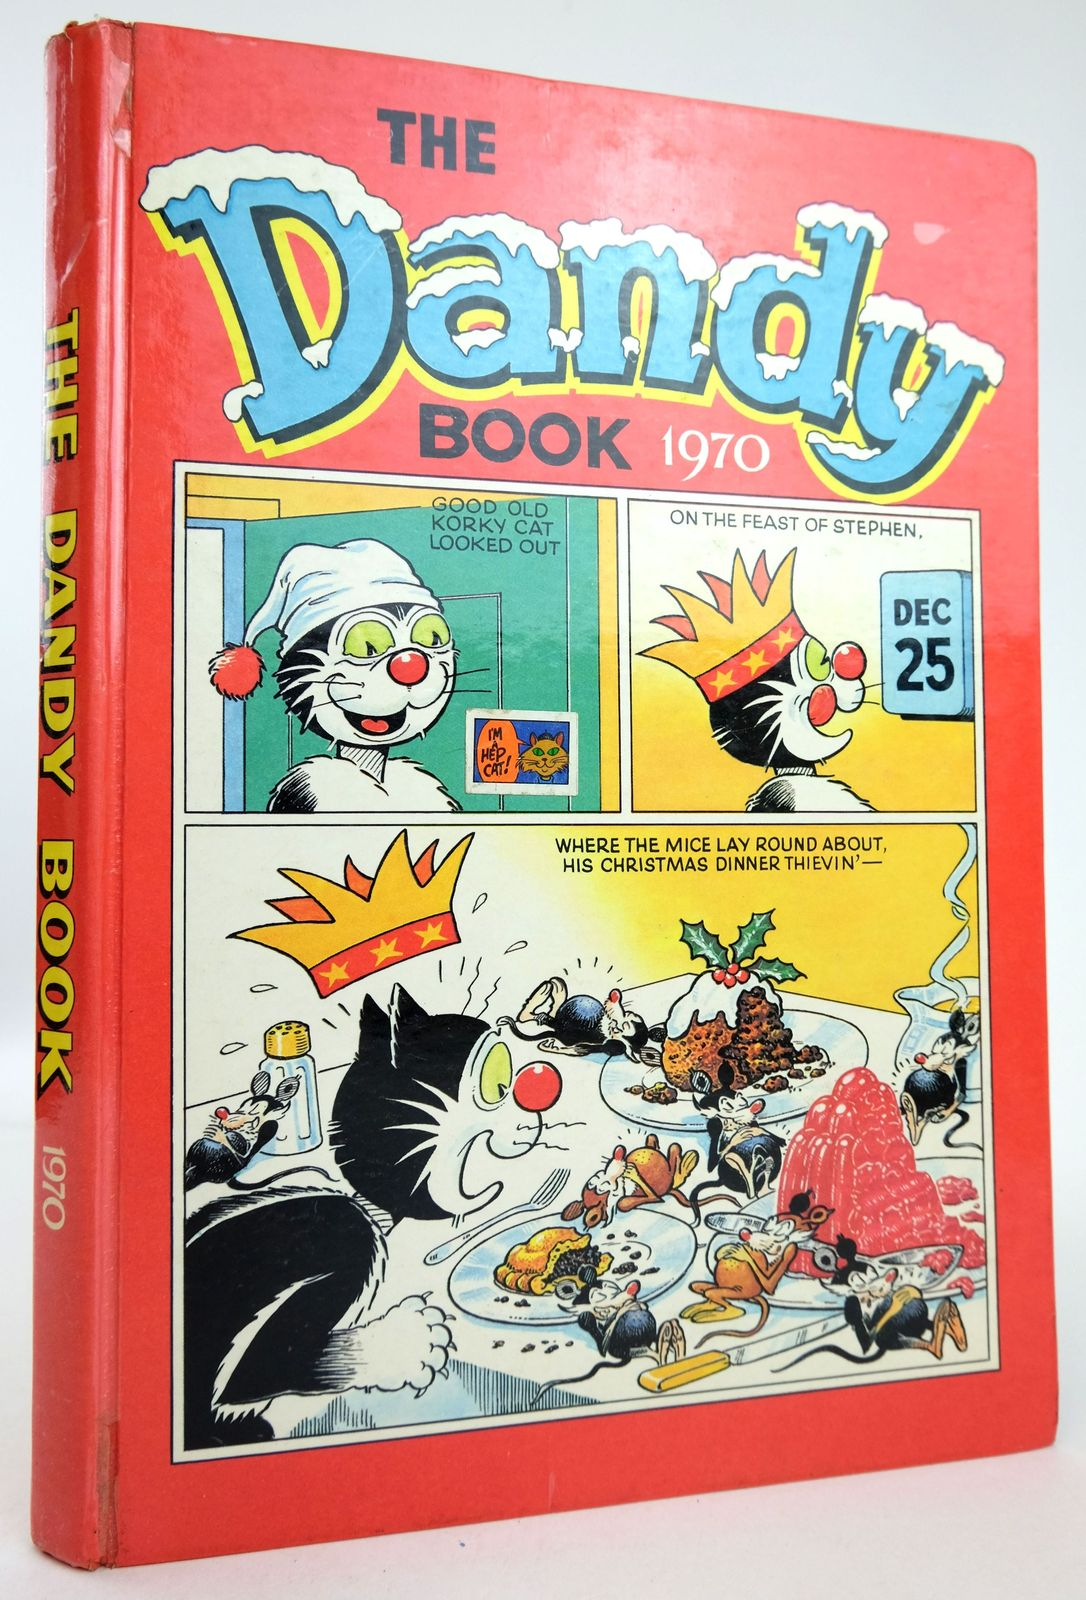 Photo of THE DANDY BOOK 1970 published by D.C. Thomson & Co Ltd. (STOCK CODE: 1819563)  for sale by Stella & Rose's Books